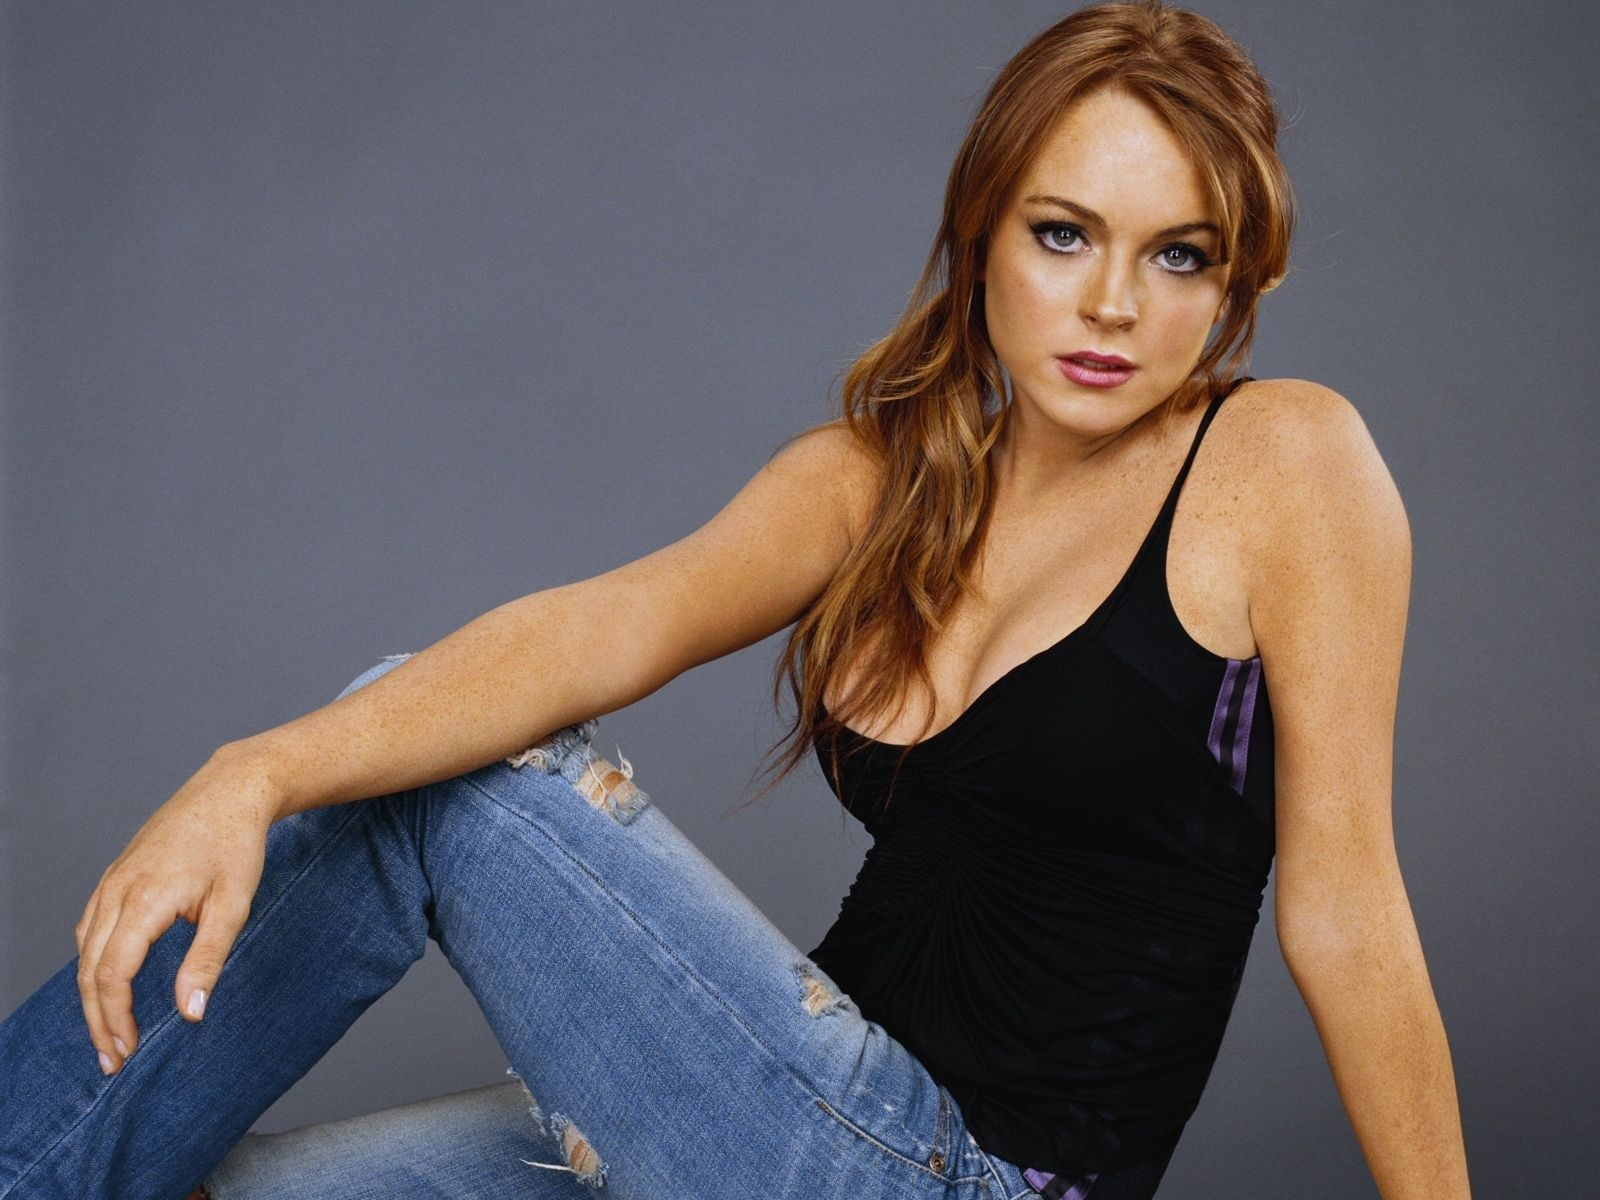 lindsay lohan wallpapers hd A1